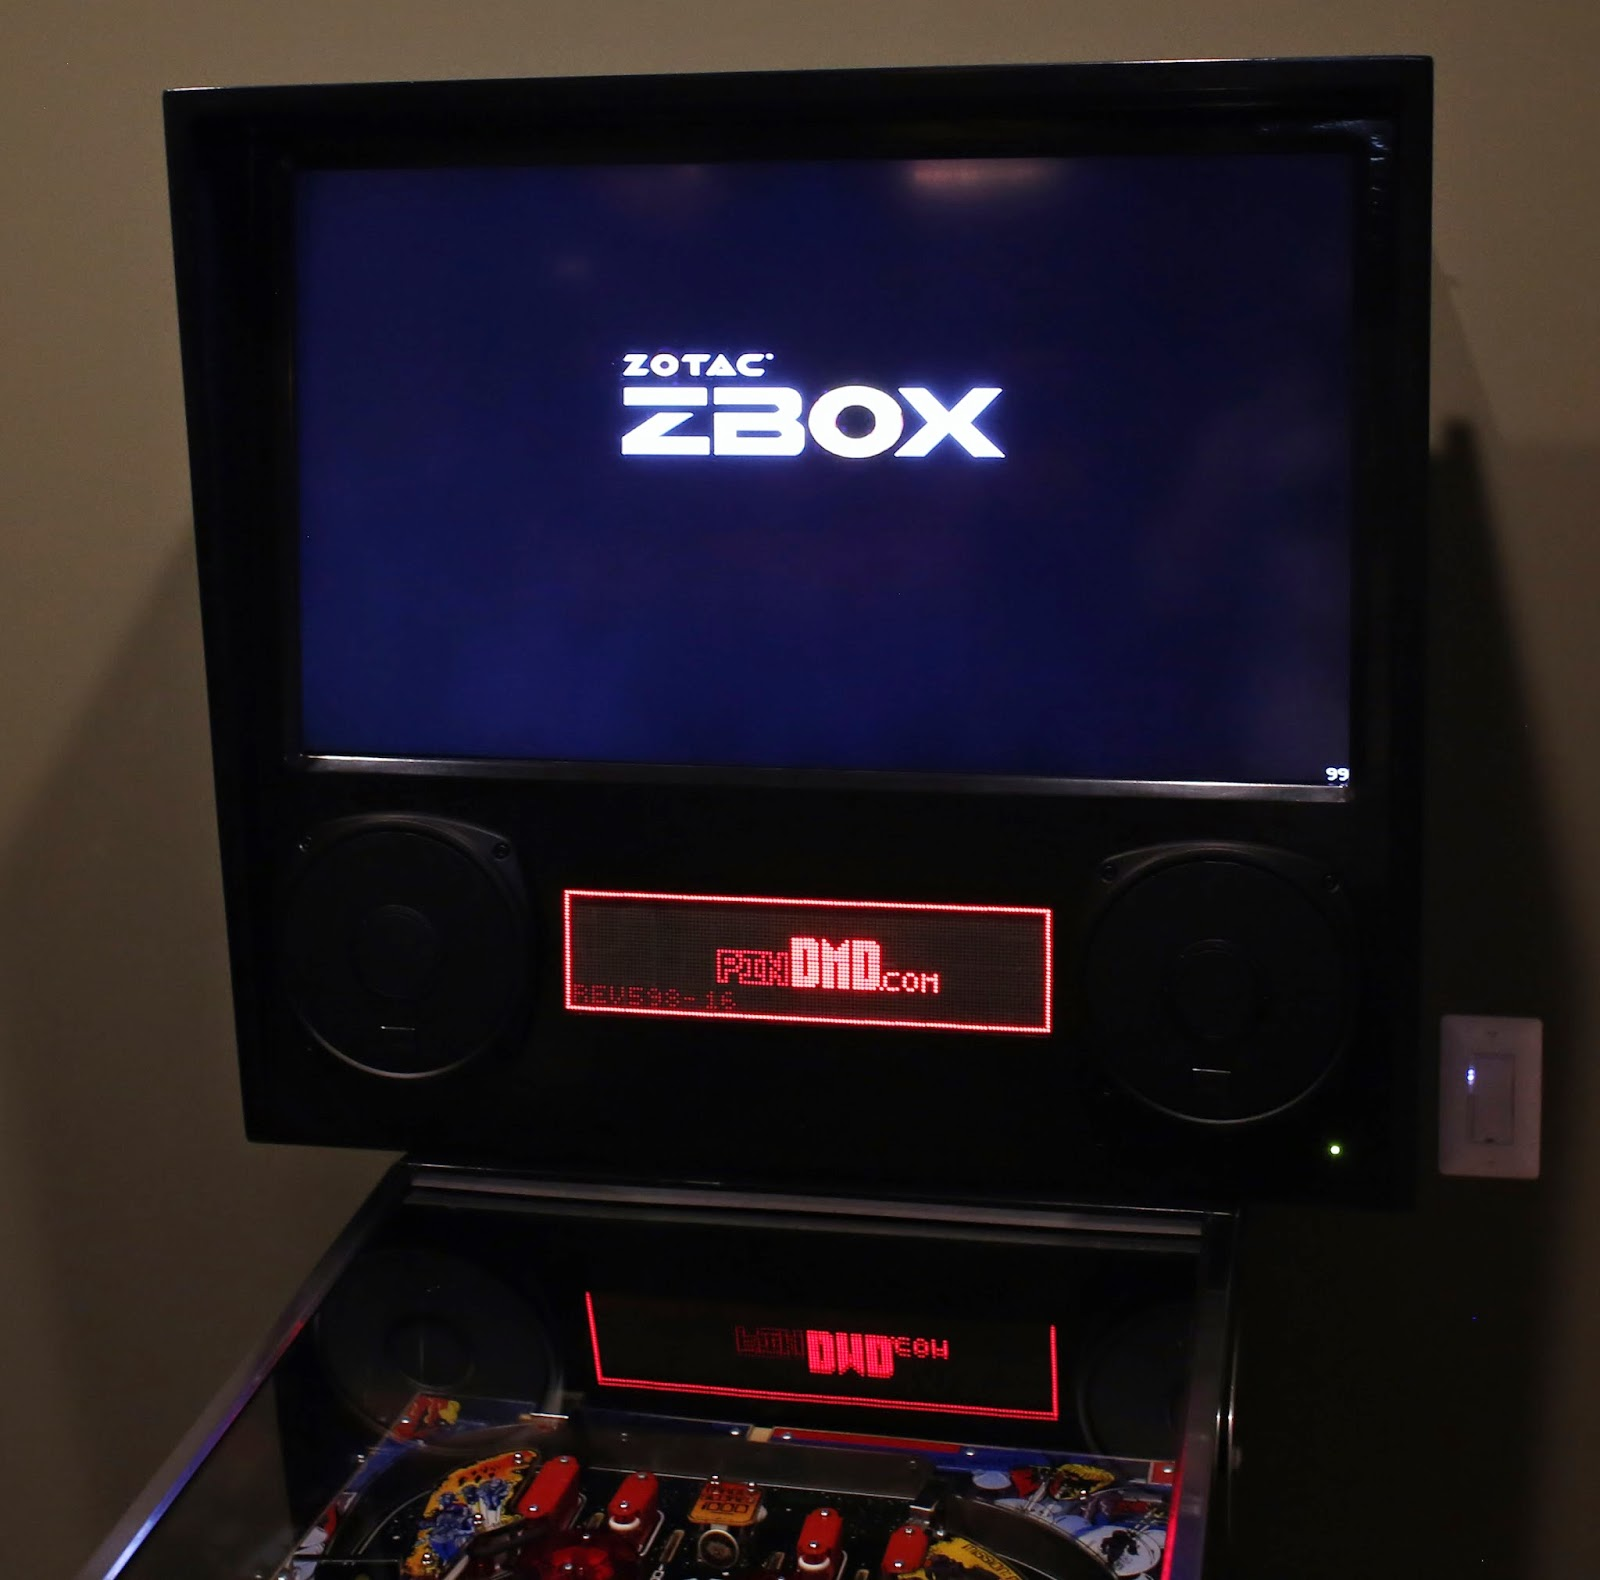 Pinball construction set - Backbox Build Complete With Upgraded Speakers And A Real Dmd Connected Via A Pindmd2